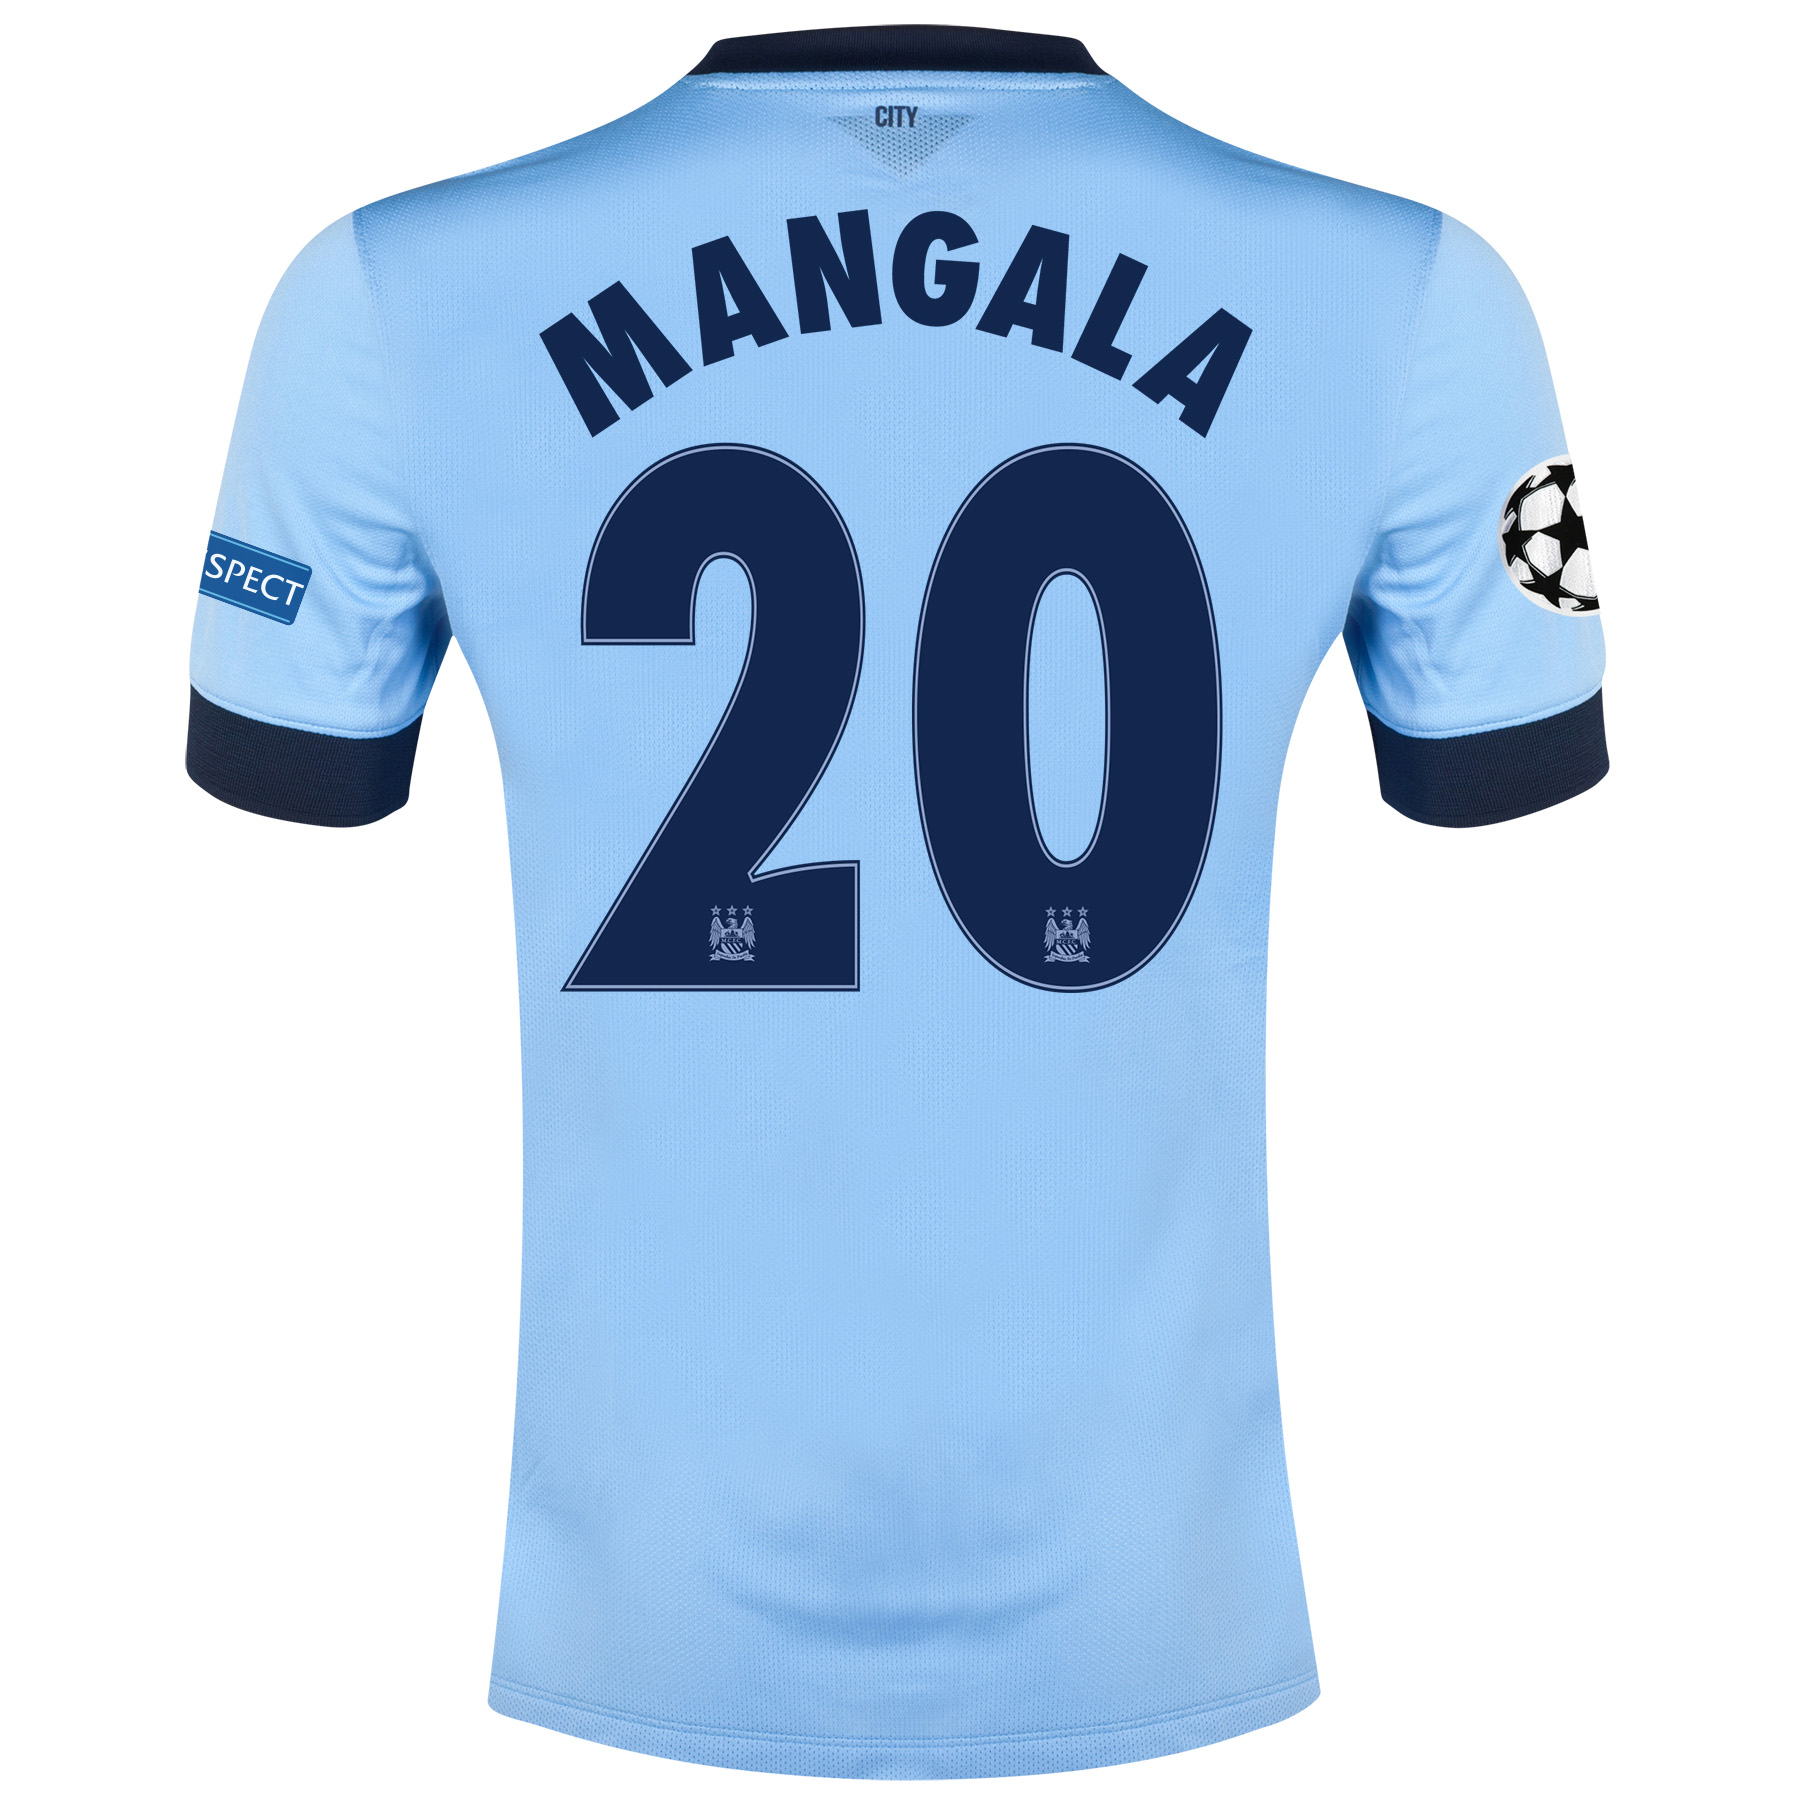 Manchester City UEFA Champions League Home Shirt 2014/15 Sky Blue with Mangala 20 printing